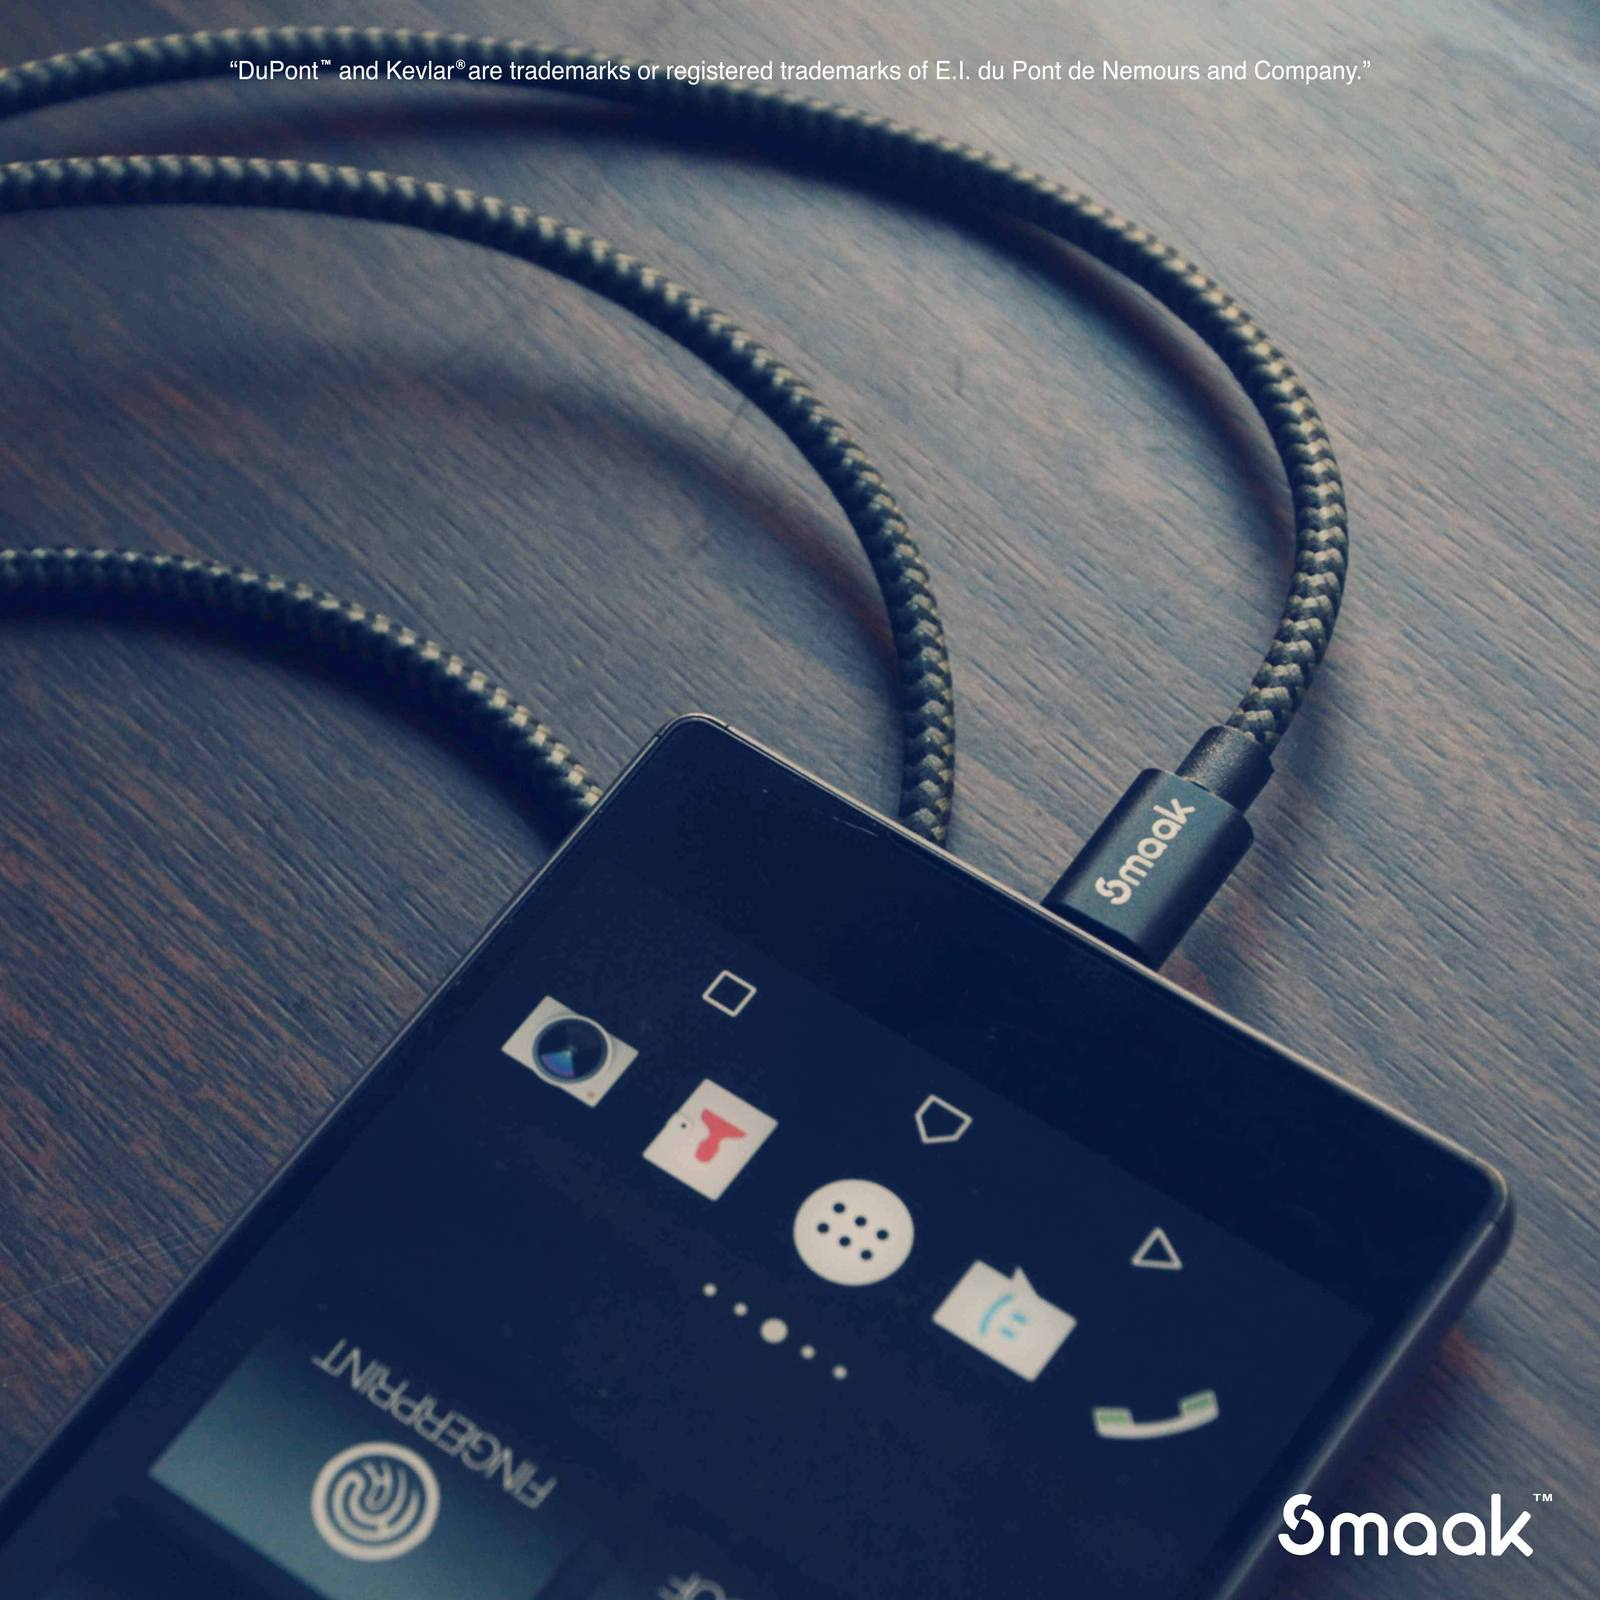 Smaak Tourer 2m Double Braid Nylon Cable Micro USB - Black image